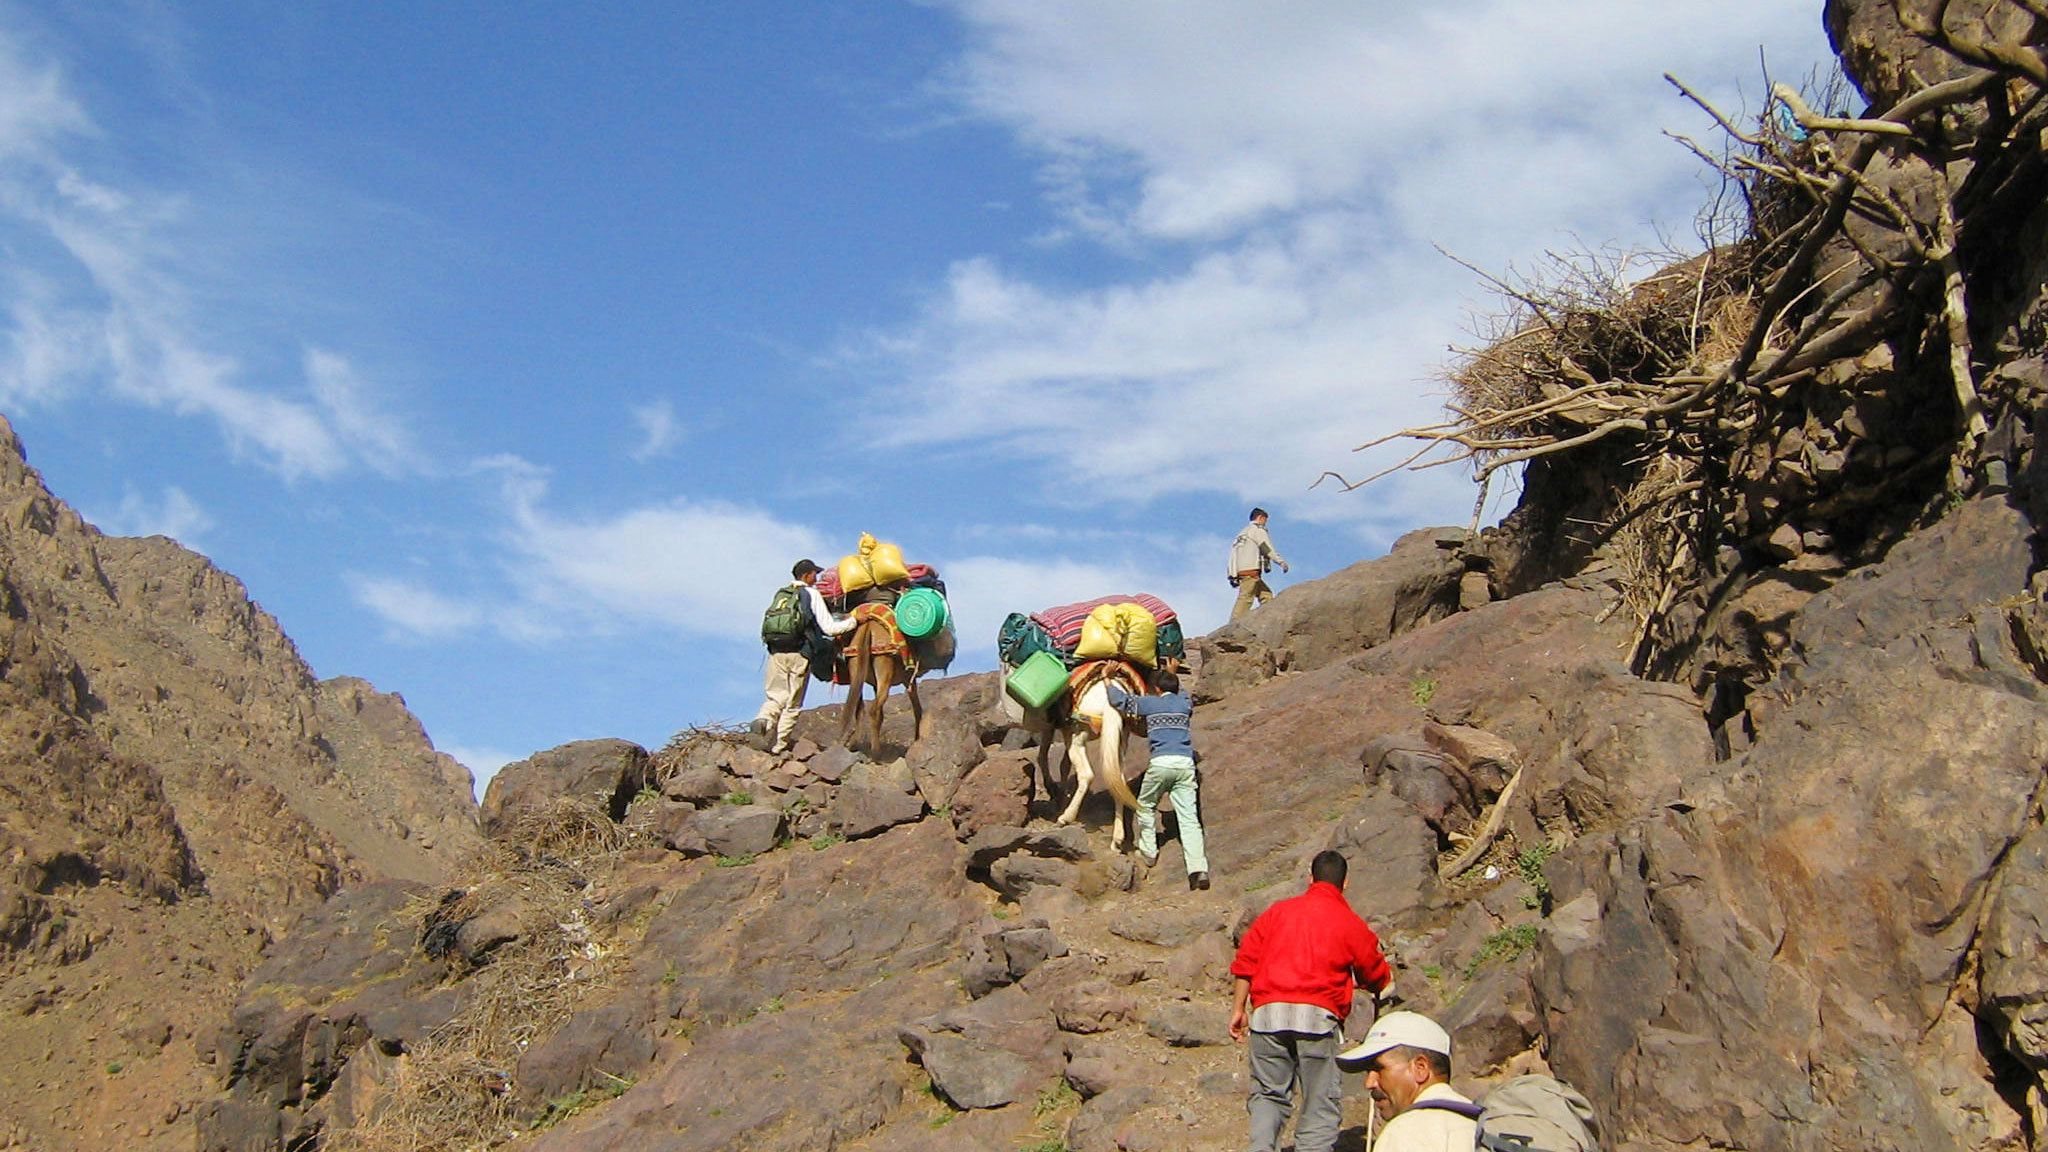 Hiking group with mules ascending the Atlas Mountains in Marrakech